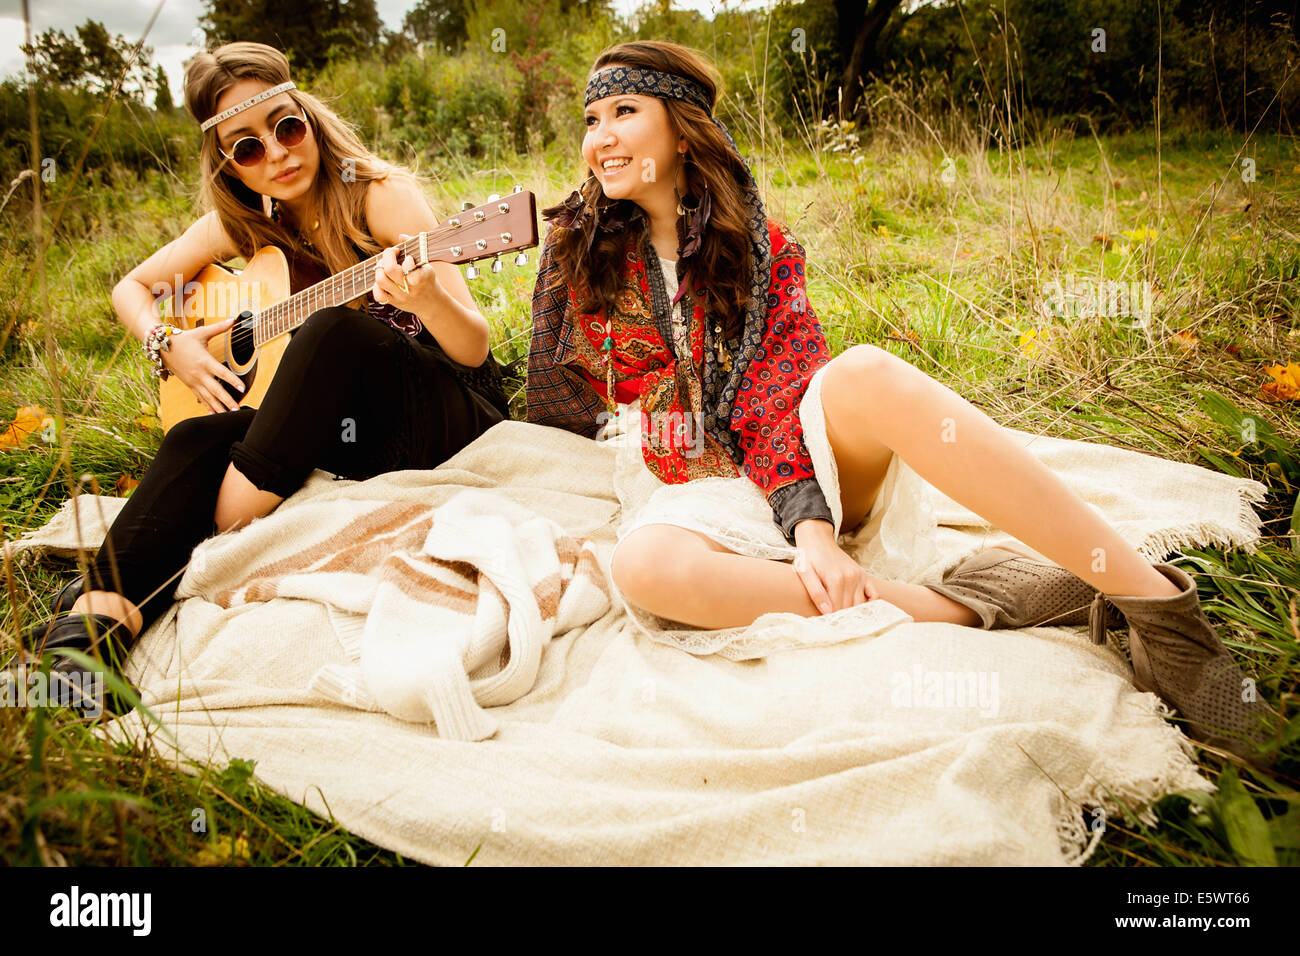 Hippy girls on blanket in field, playing guitar - Stock Image